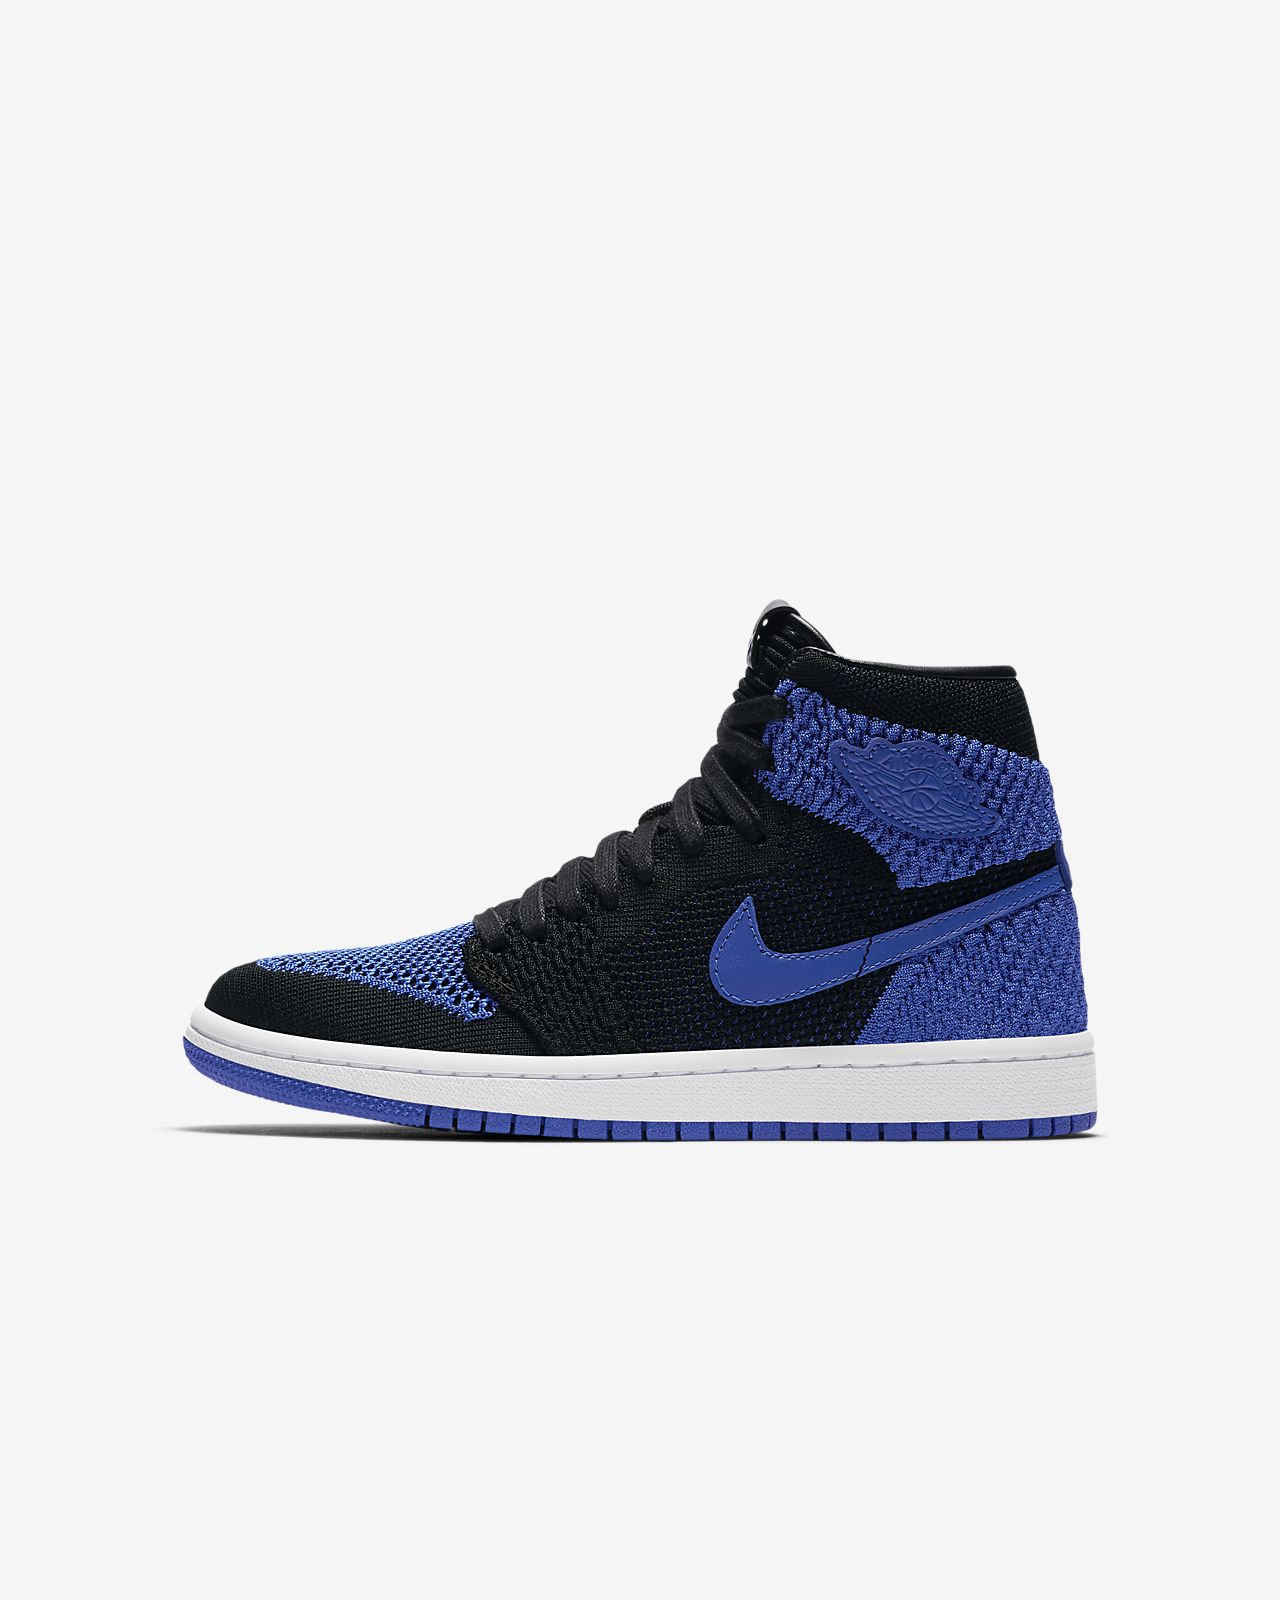 Air Jordan 1 Retro High Flyknit Big Kids Shoe